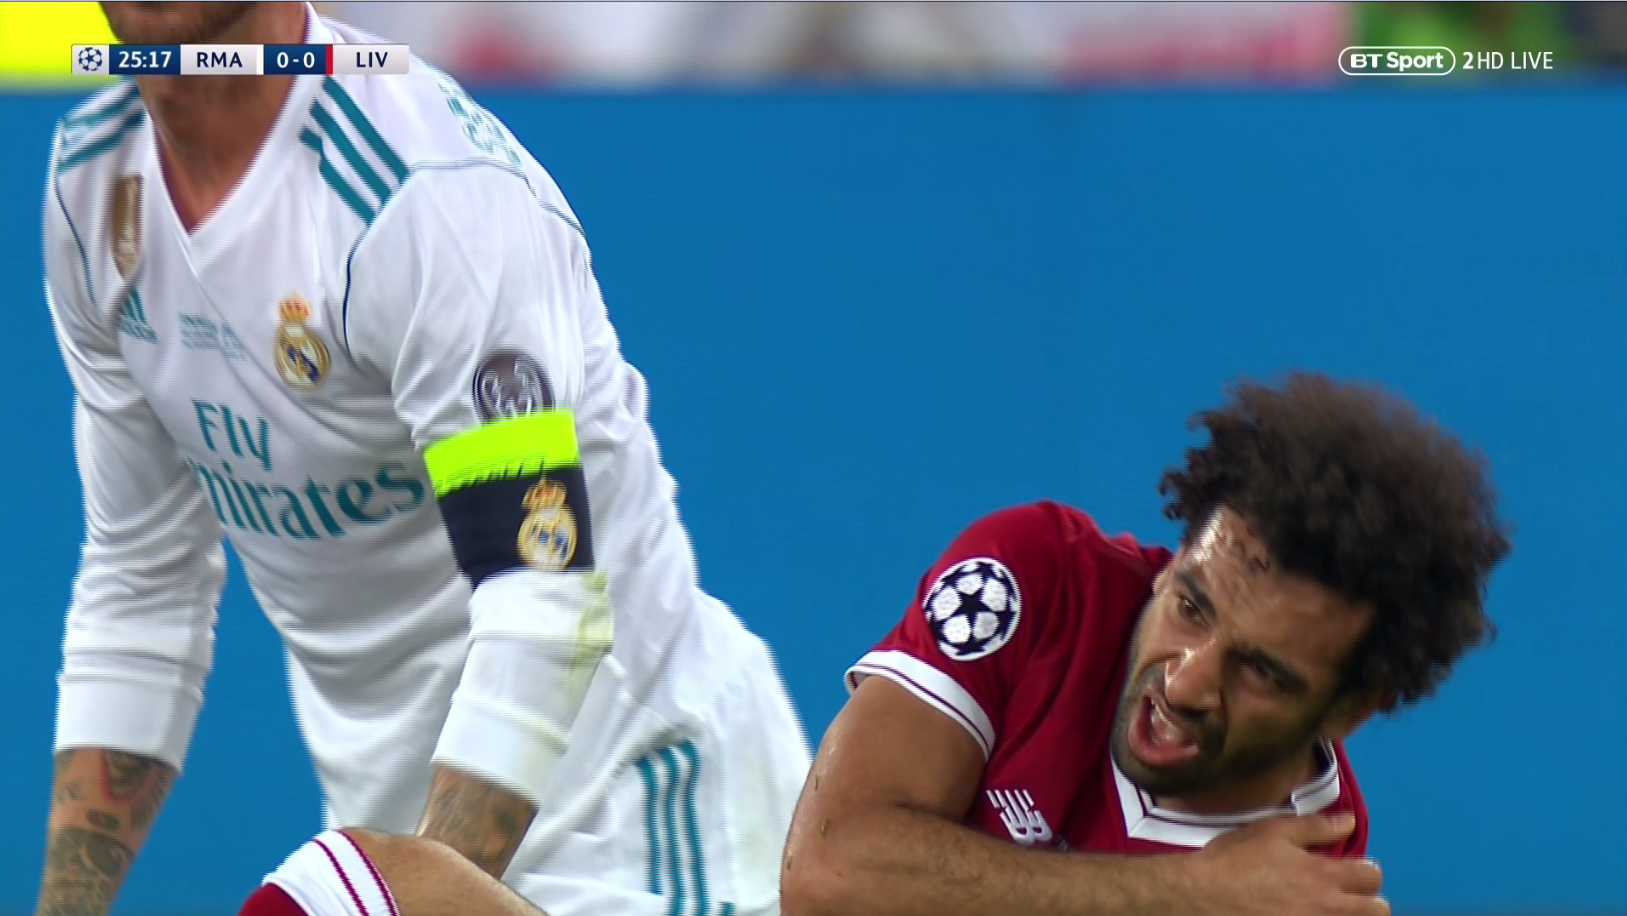 A visibly distraught Salah held his shoulder immediately after the fall